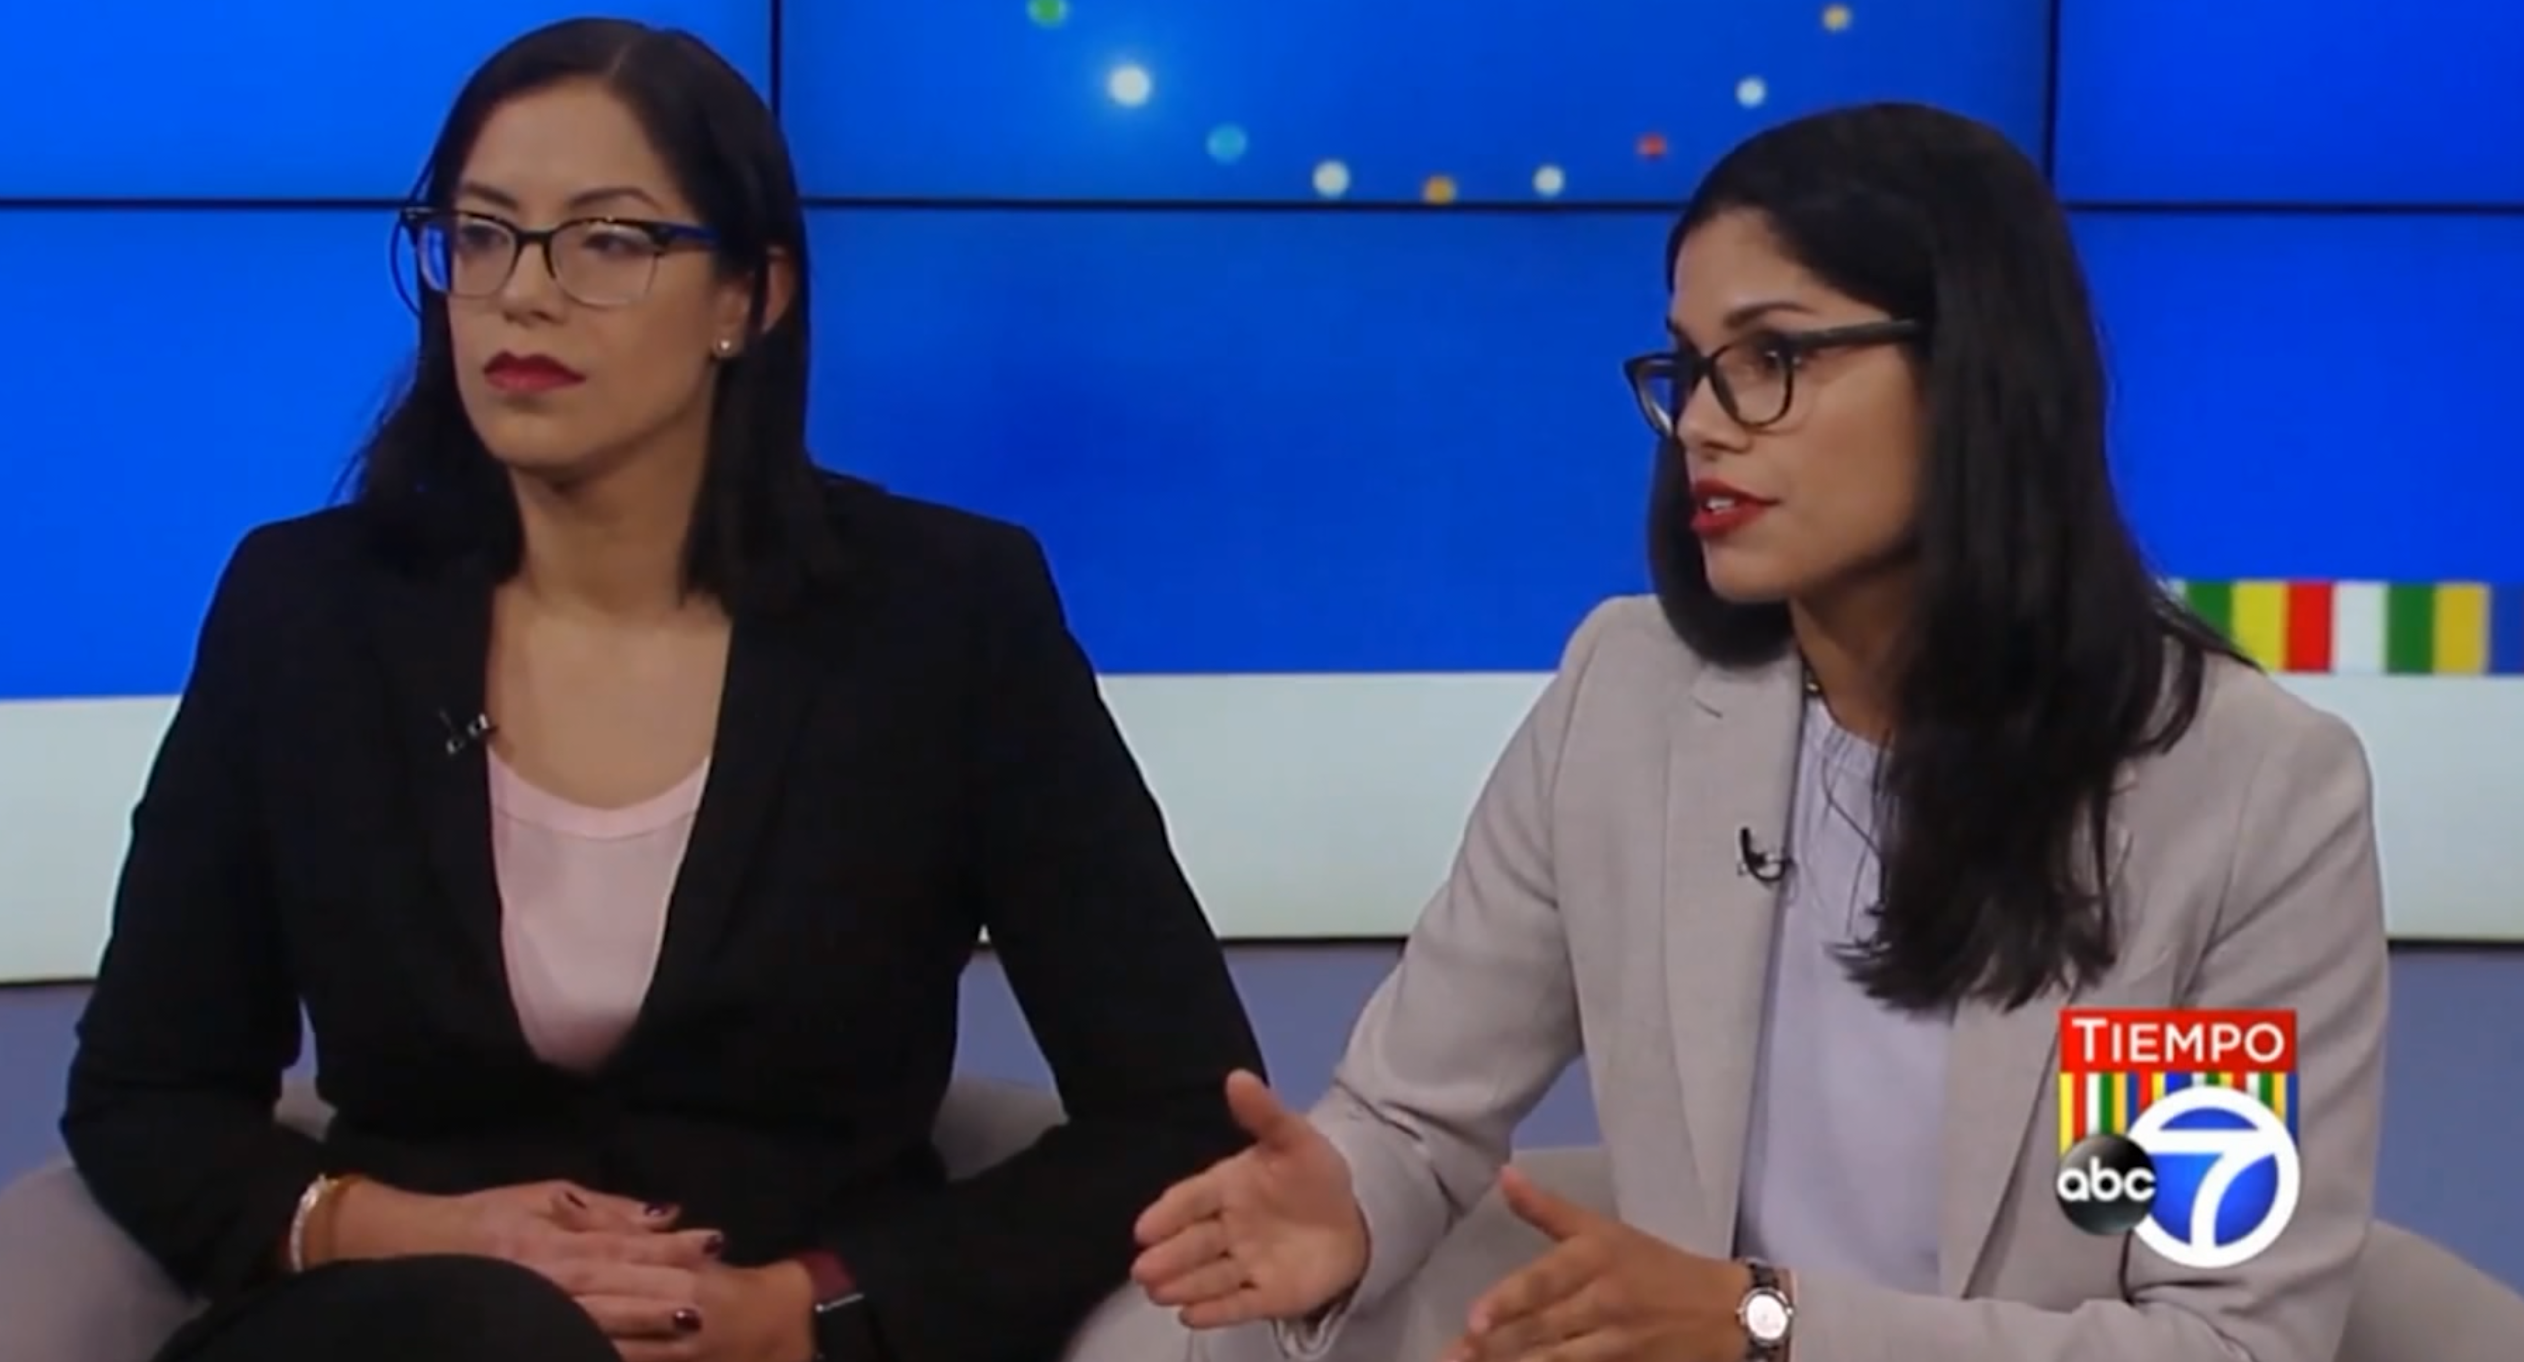 Lillian Marquez and Laura Rodriguez Discuss Wage Theft on ABC's Tiempo